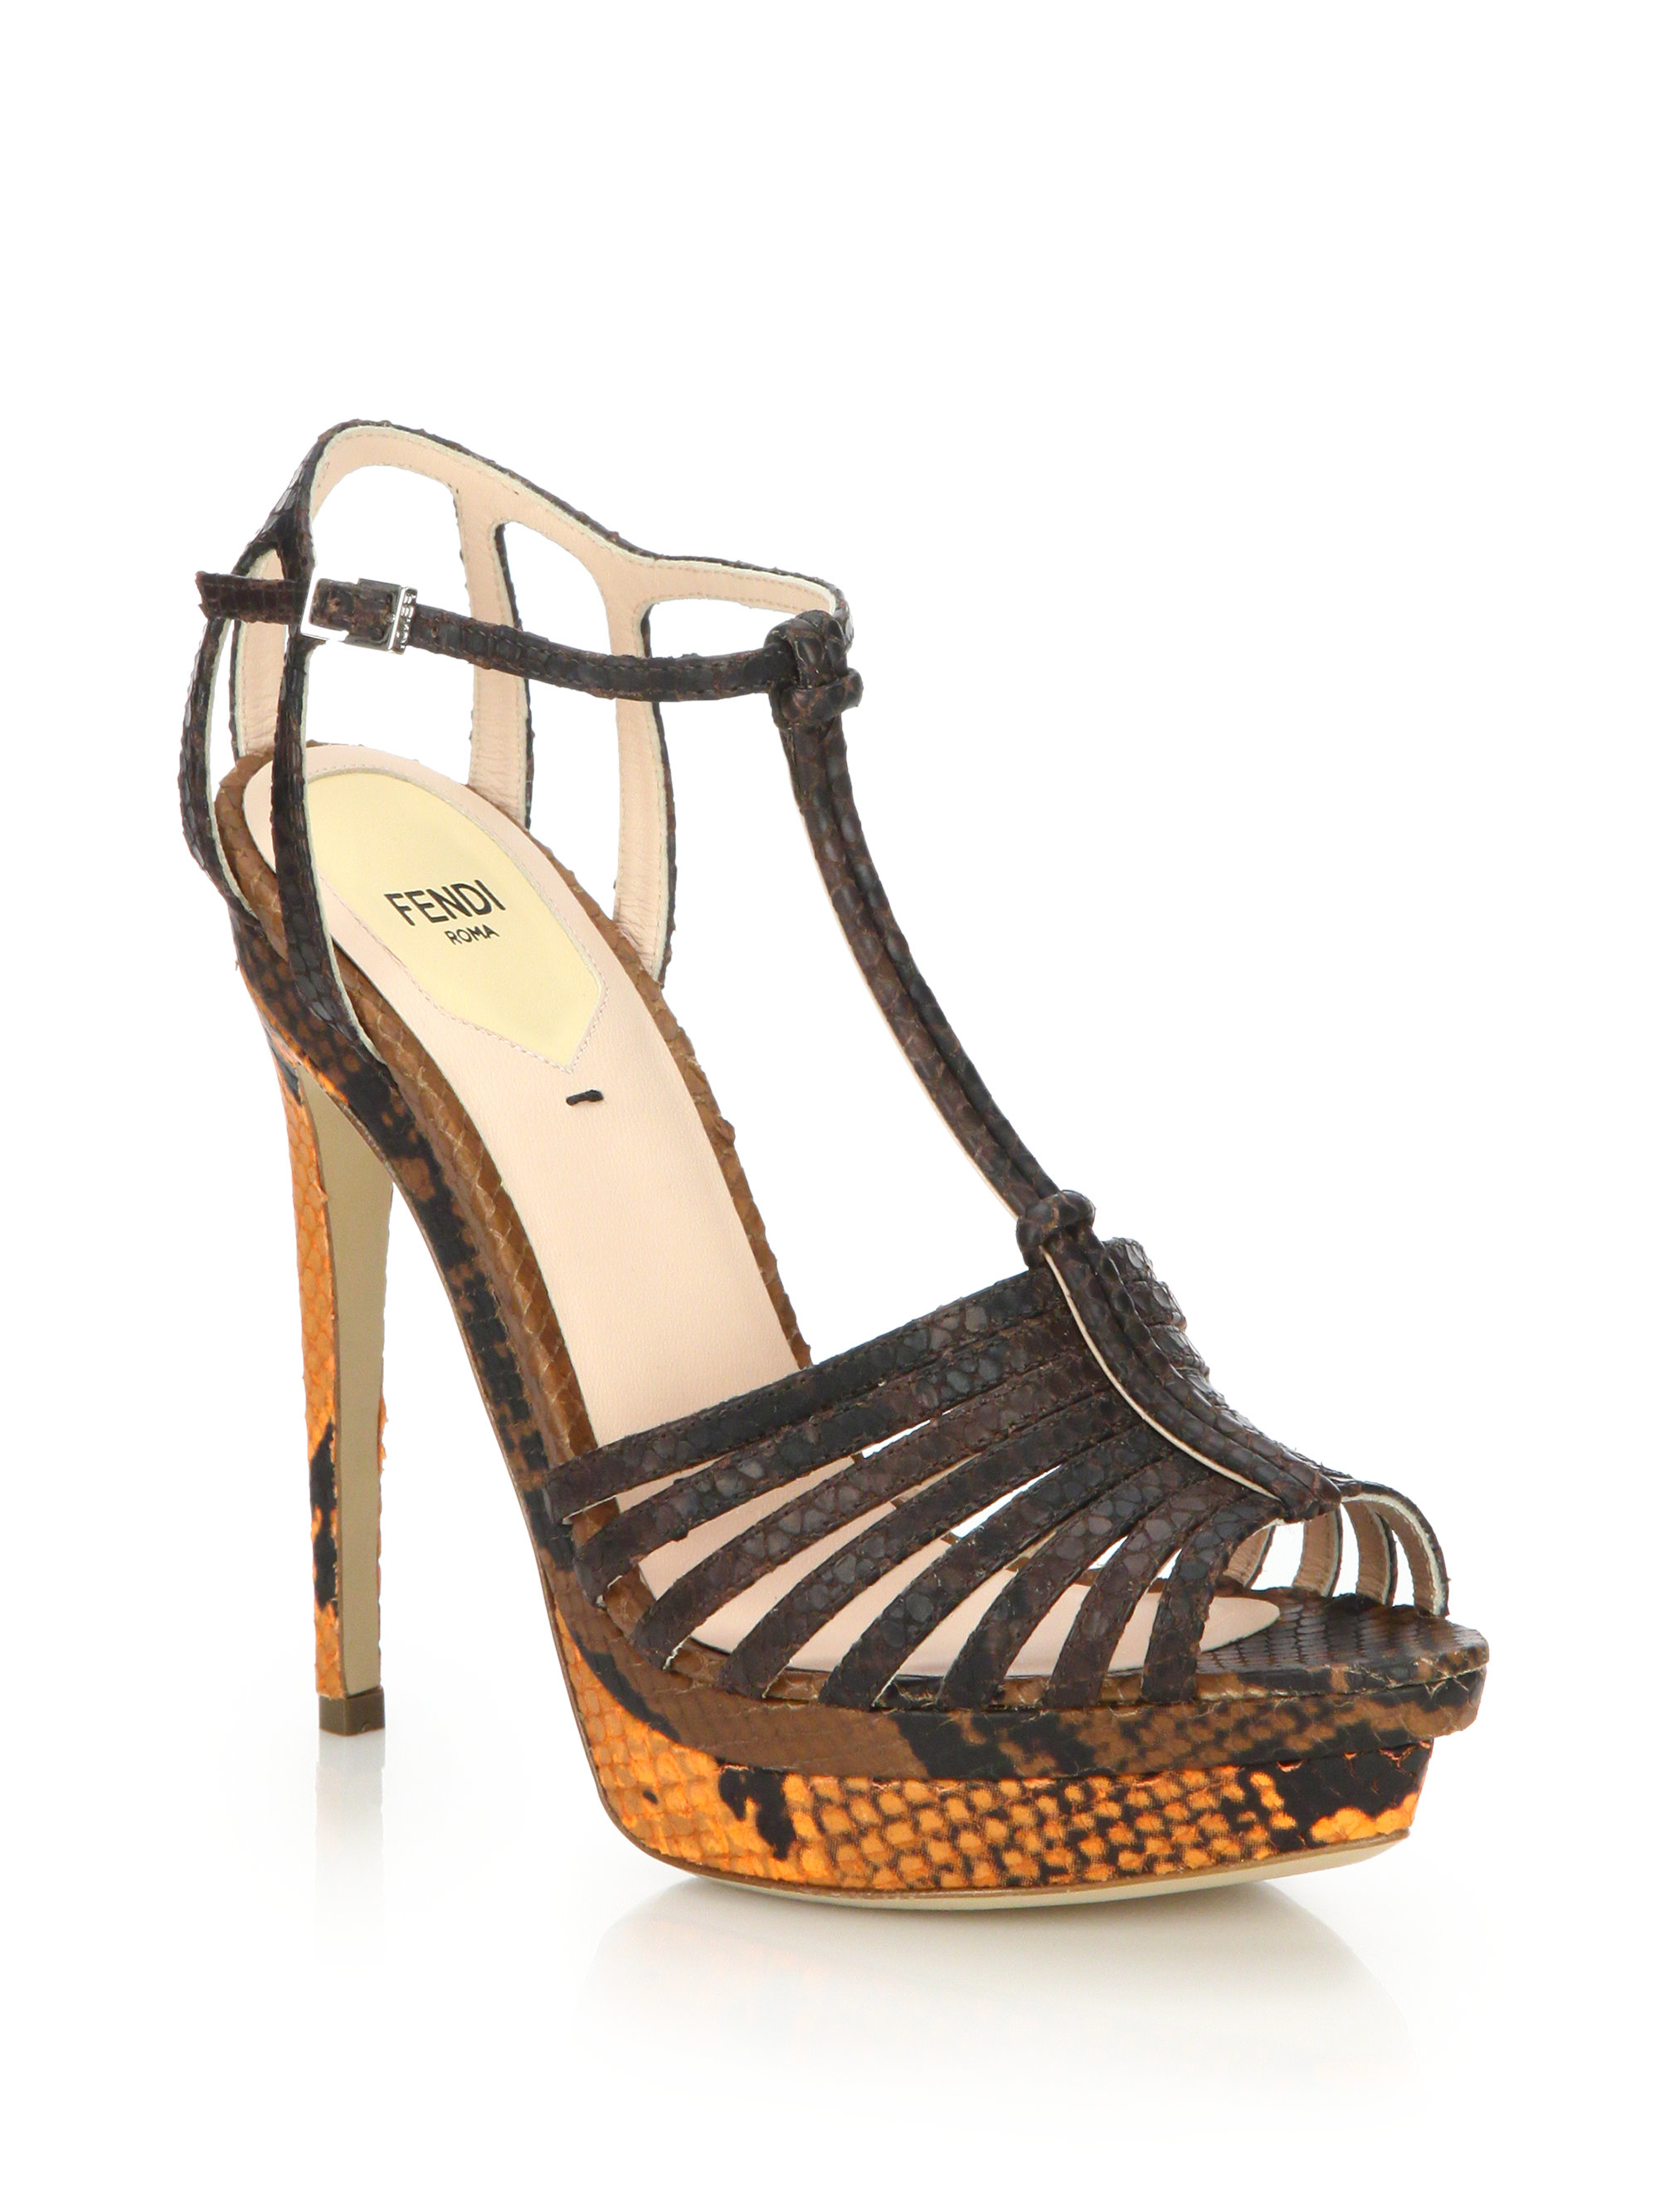 Fendi Embossed Leather Sandals cheap sale view free shipping new arrival eastbay for sale cWKjjVB